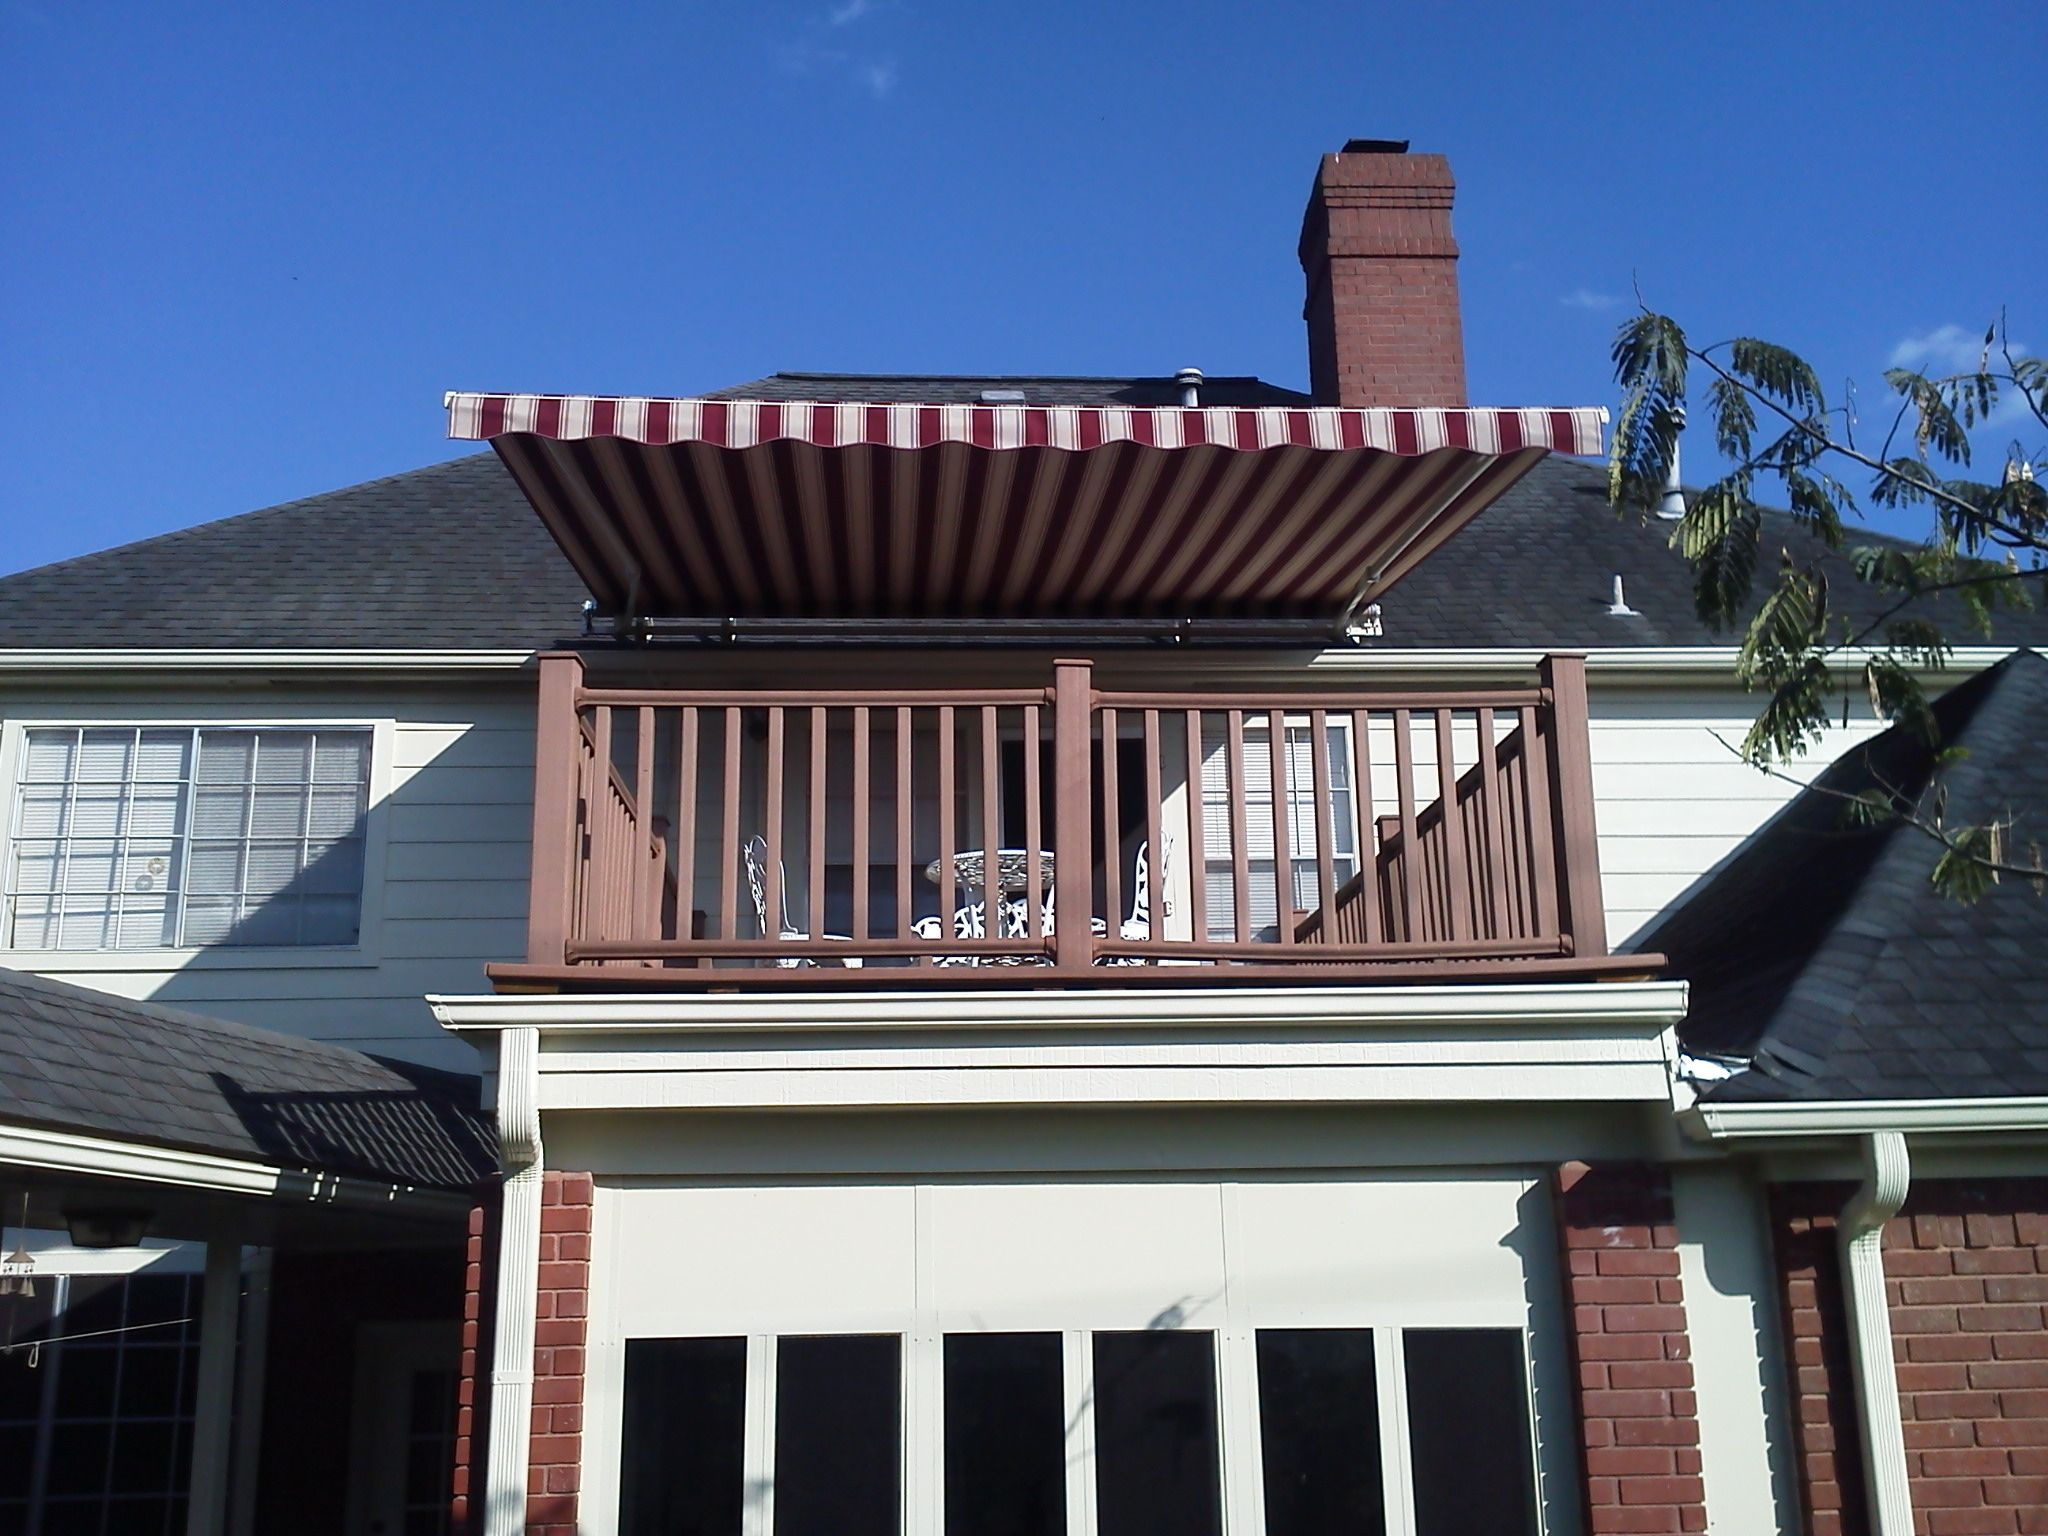 Motorized SunSetter Retractable Awning 14' XL model Woven ...